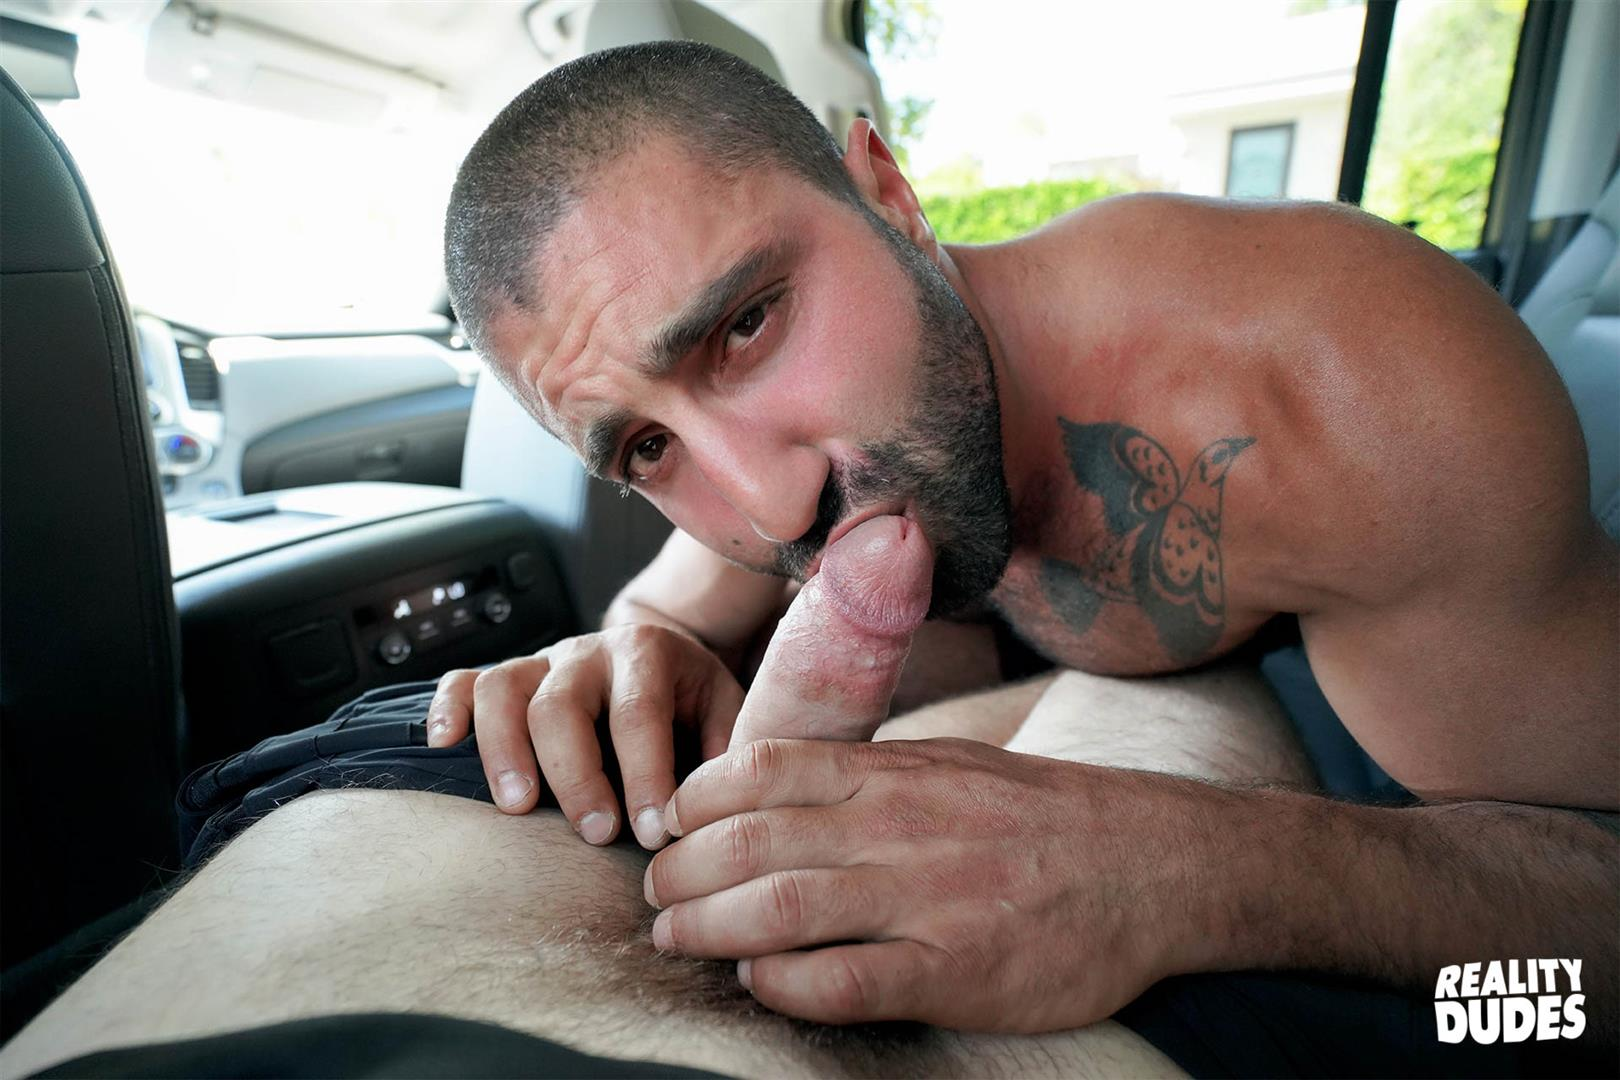 Reality-Dudes-Sharok-Straight-Guy-Gets-Fucked-In-Hairy-Ass-For-Cash-09 Paying A Straight Muscle Hunk To Let Me Fuck His Hairy Ass